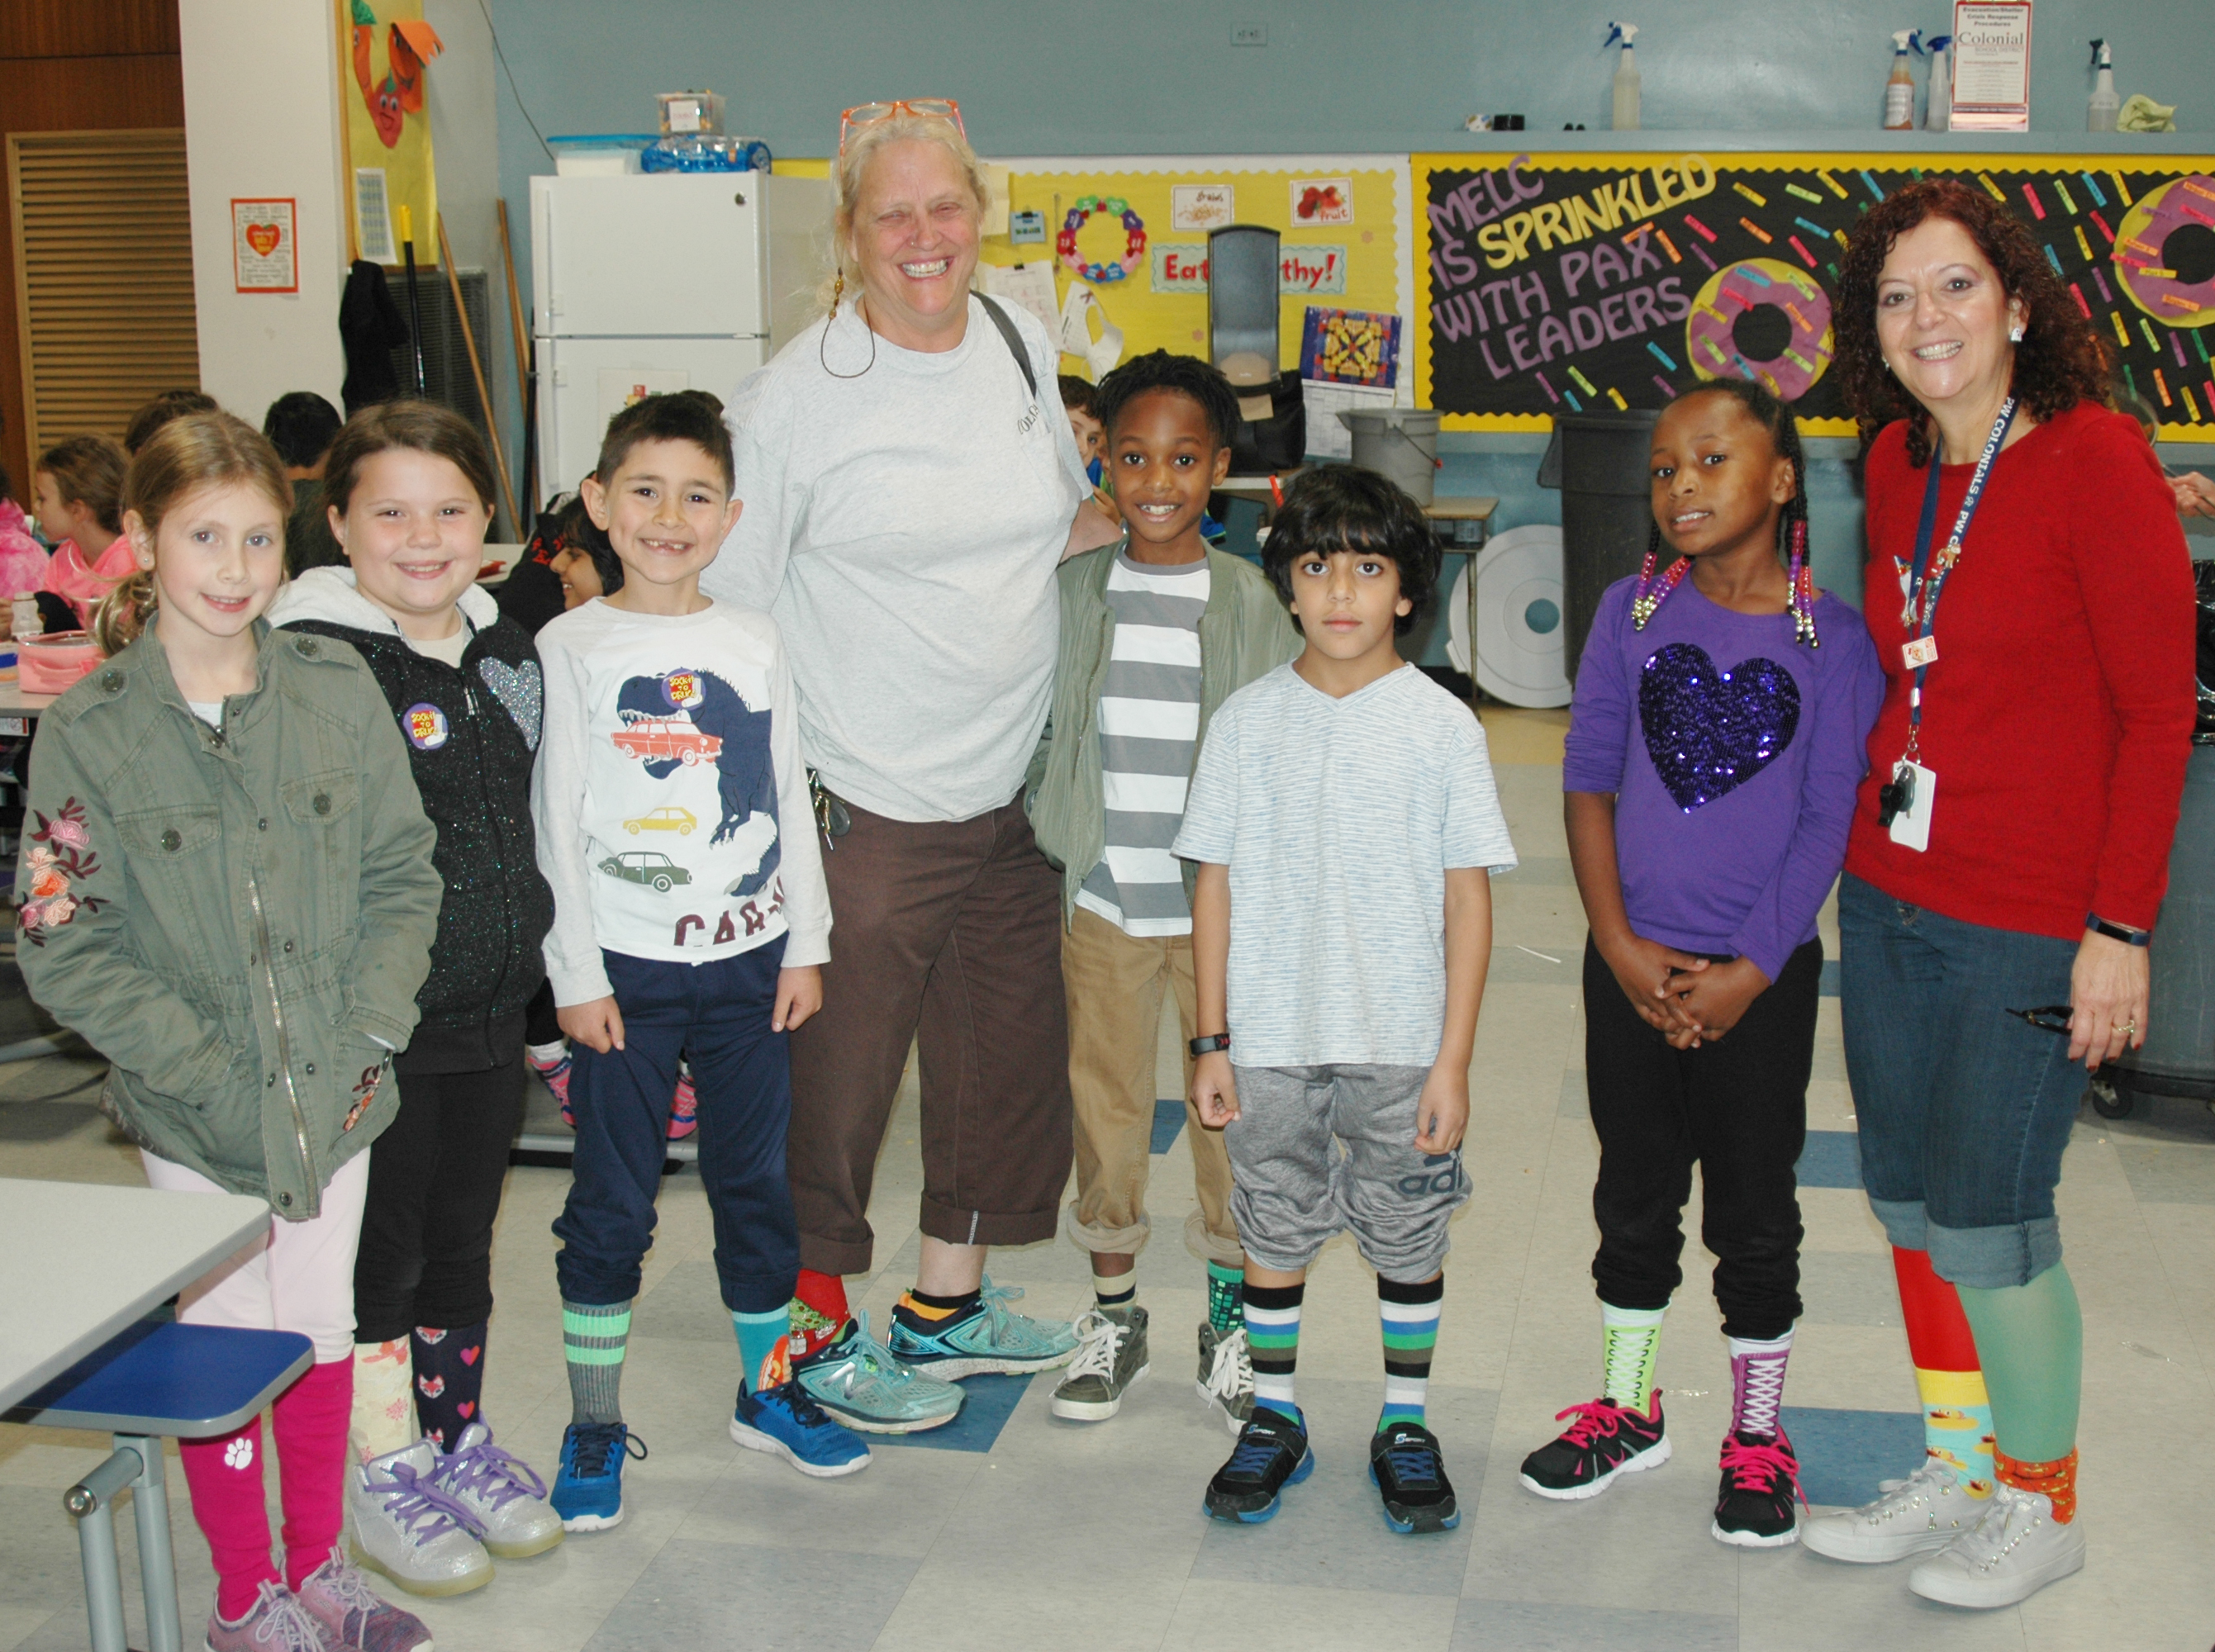 Six children and two adults with their pants rolled up to show off their brightly colored socks.